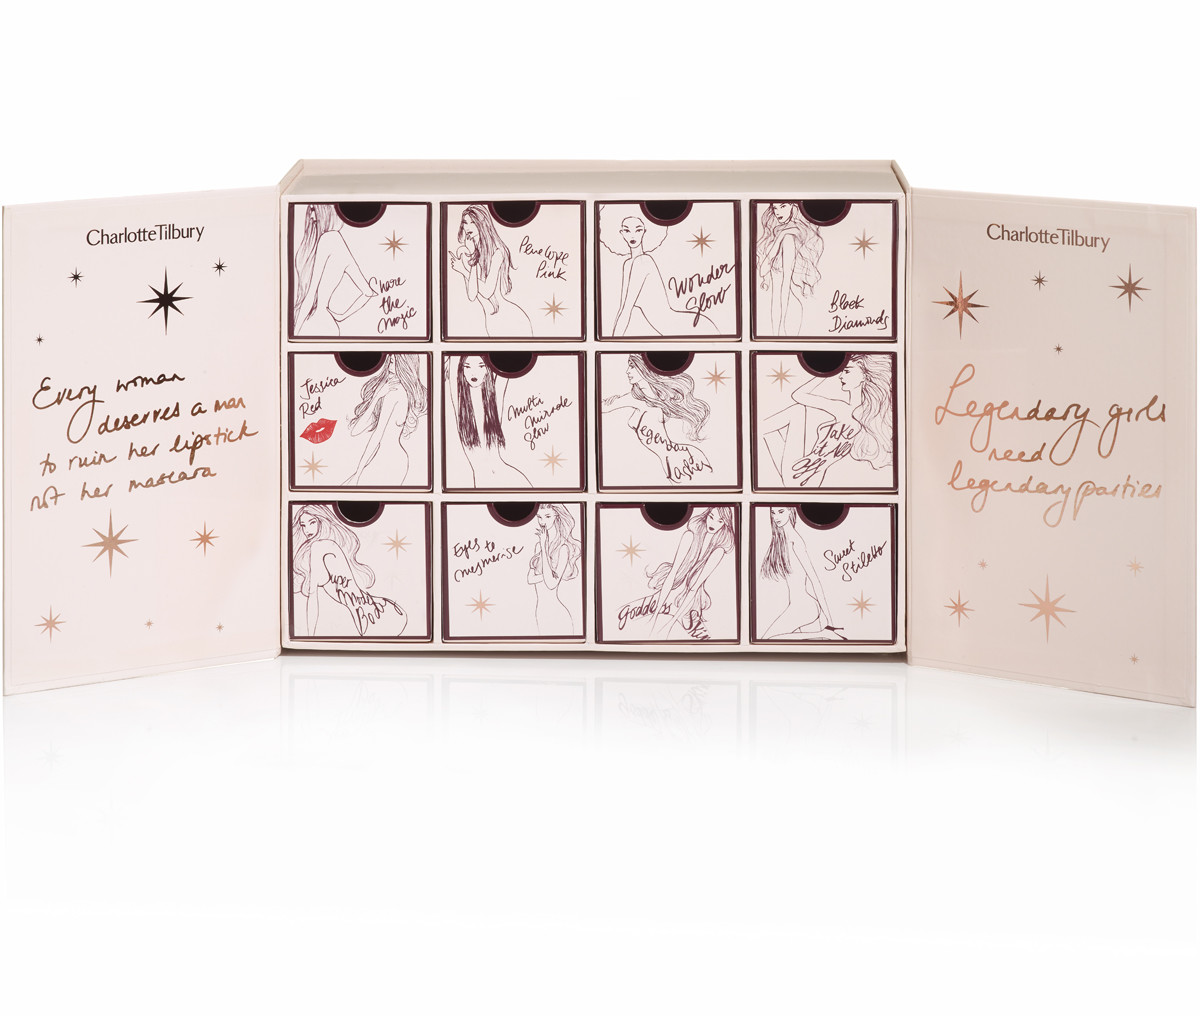 charlotte tilbury advent calendar 2016 12 days